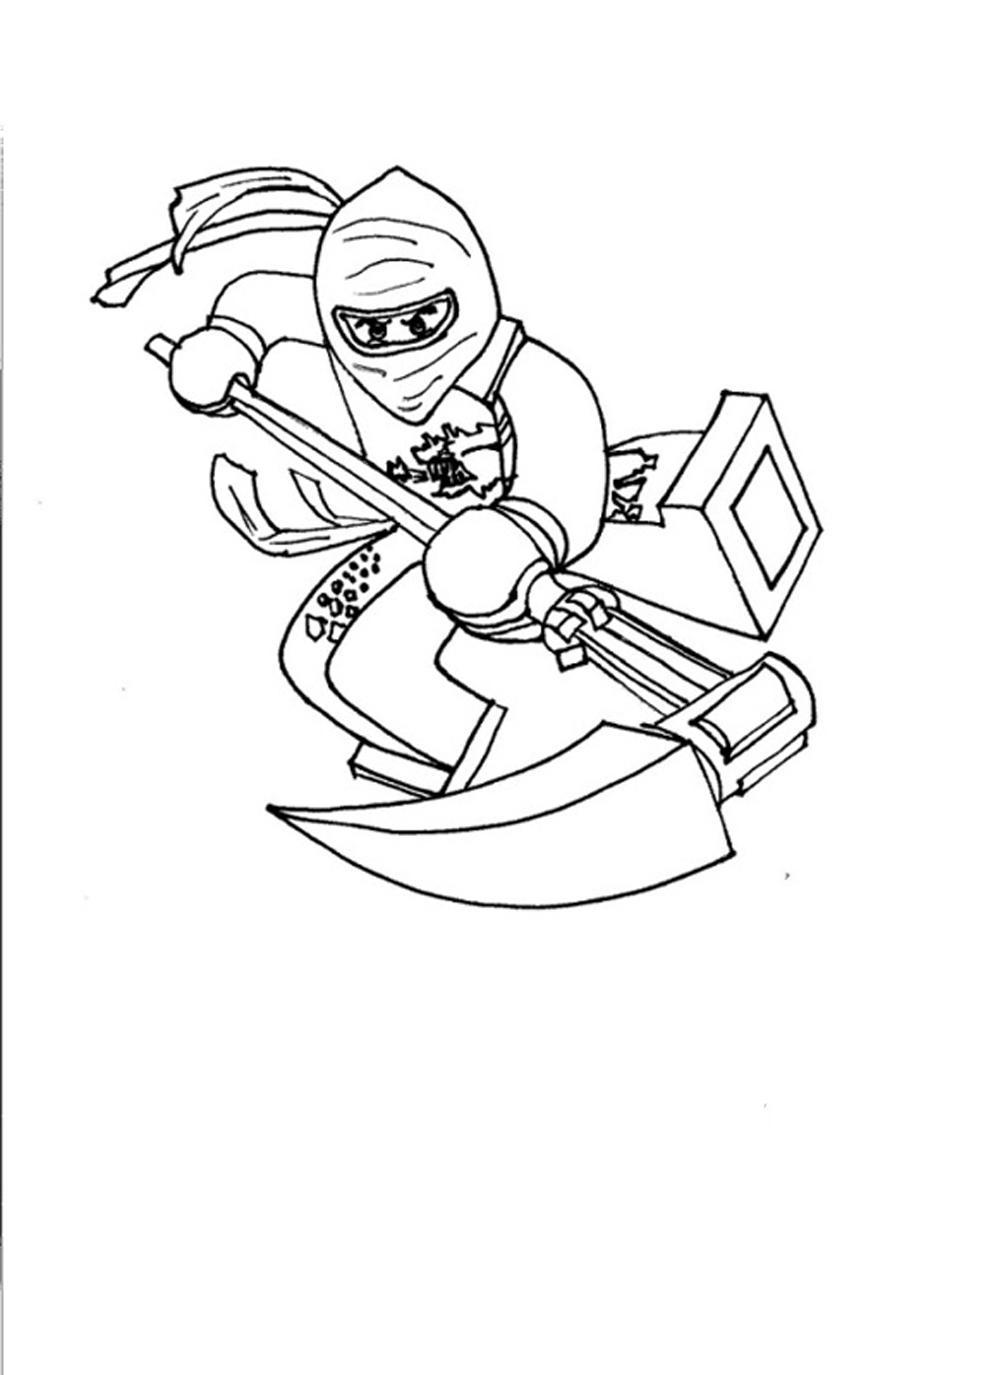 Lego ninjago colouring in pages for Ninja lego coloring pages